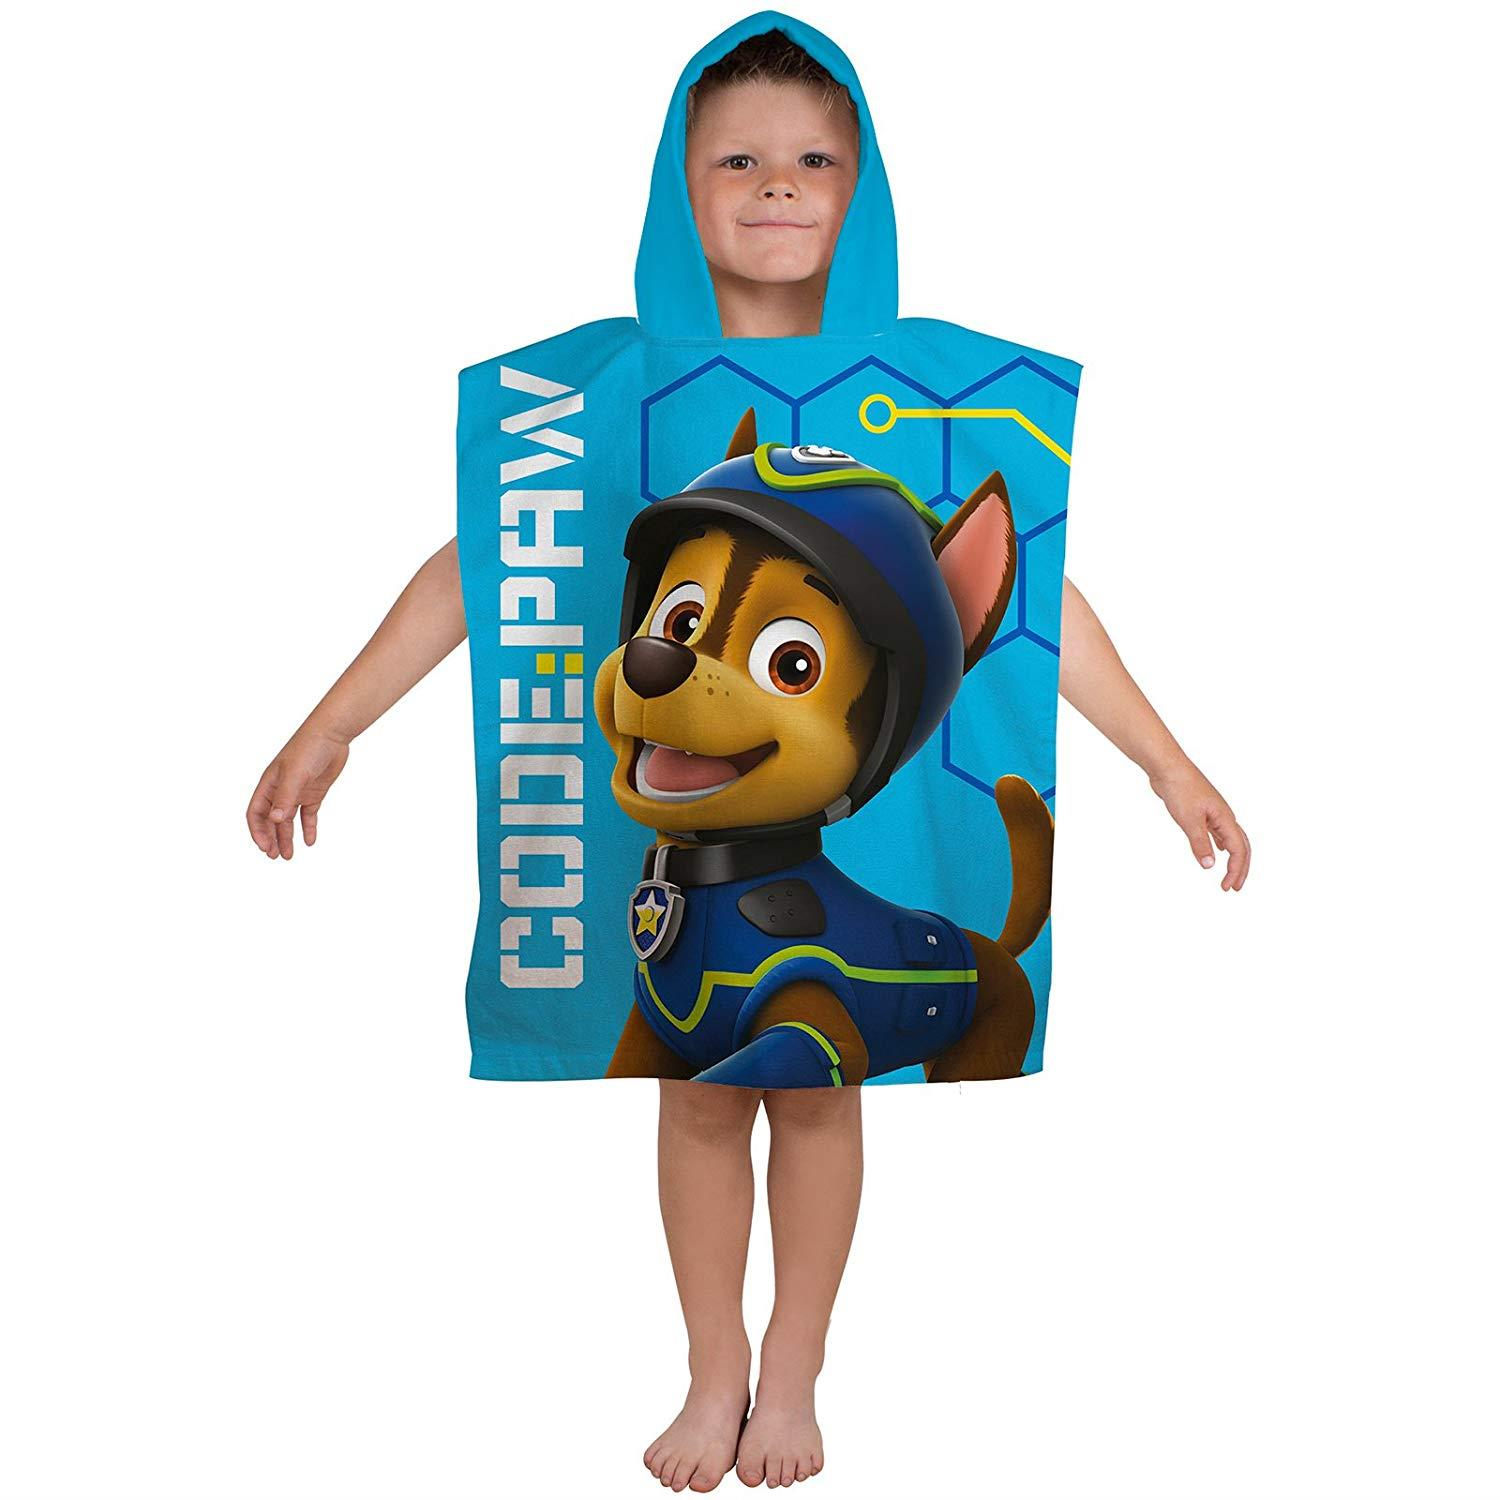 Kids-Boys-Novelty-Girls-Character-Hooded-Towel-Poncho-Beach-Bath-Swim thumbnail 22